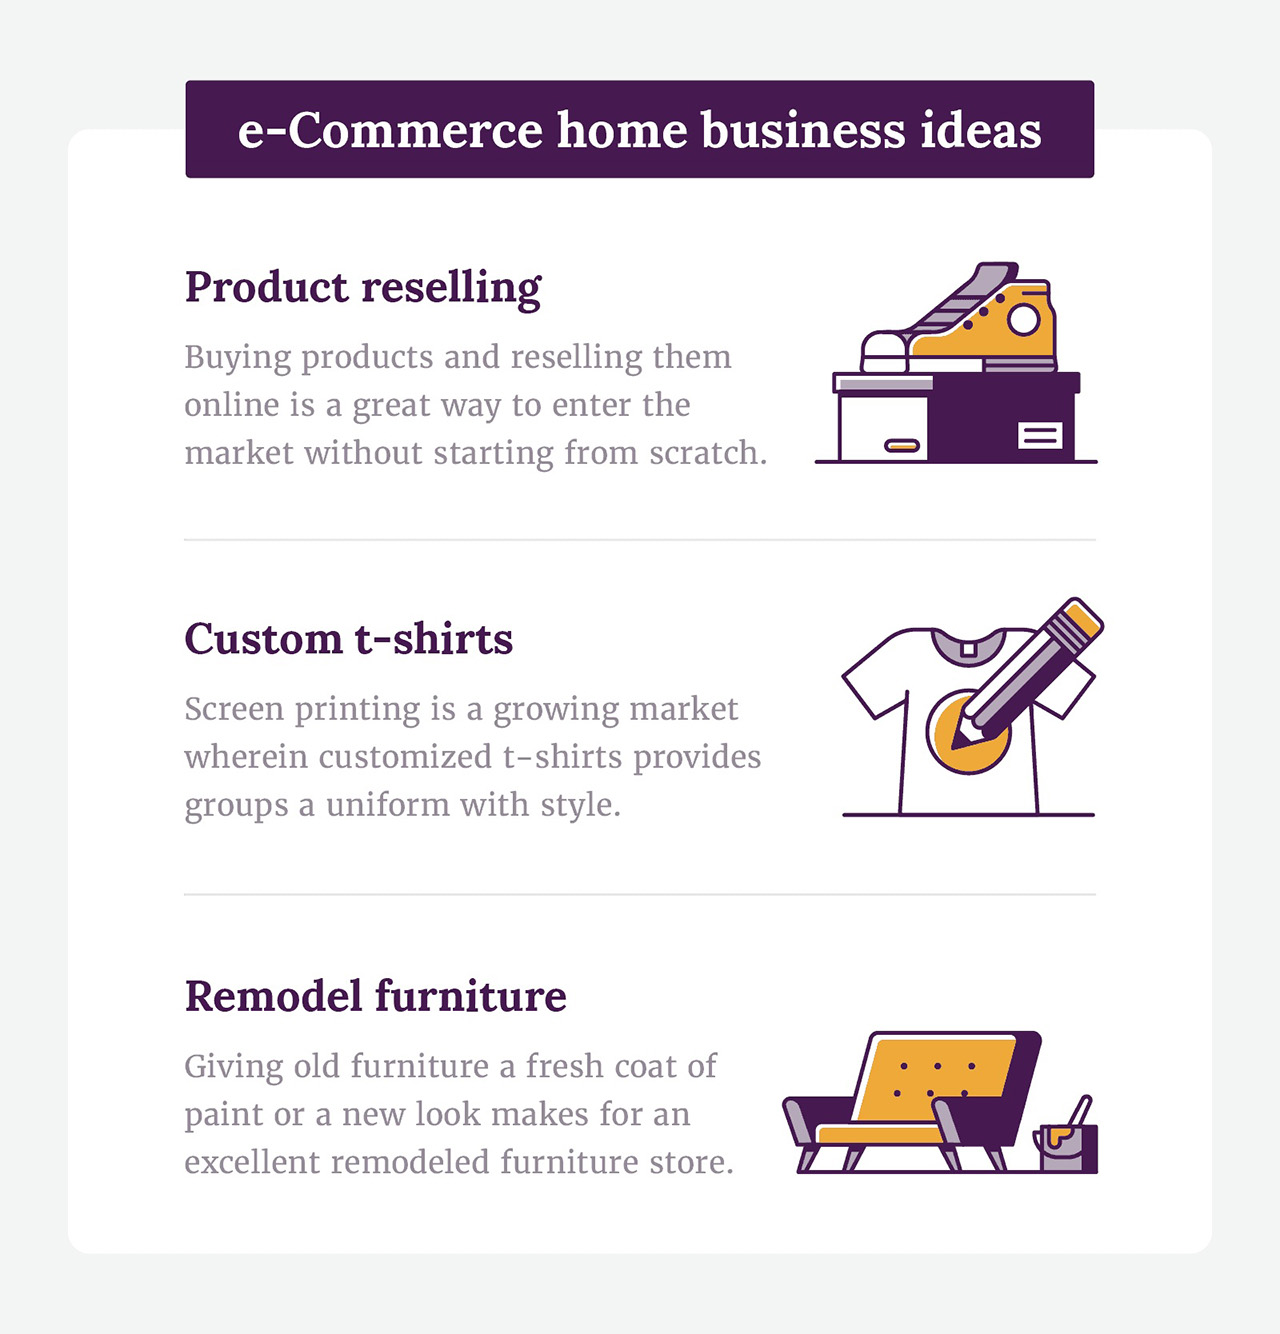 eCommerce home business ideas